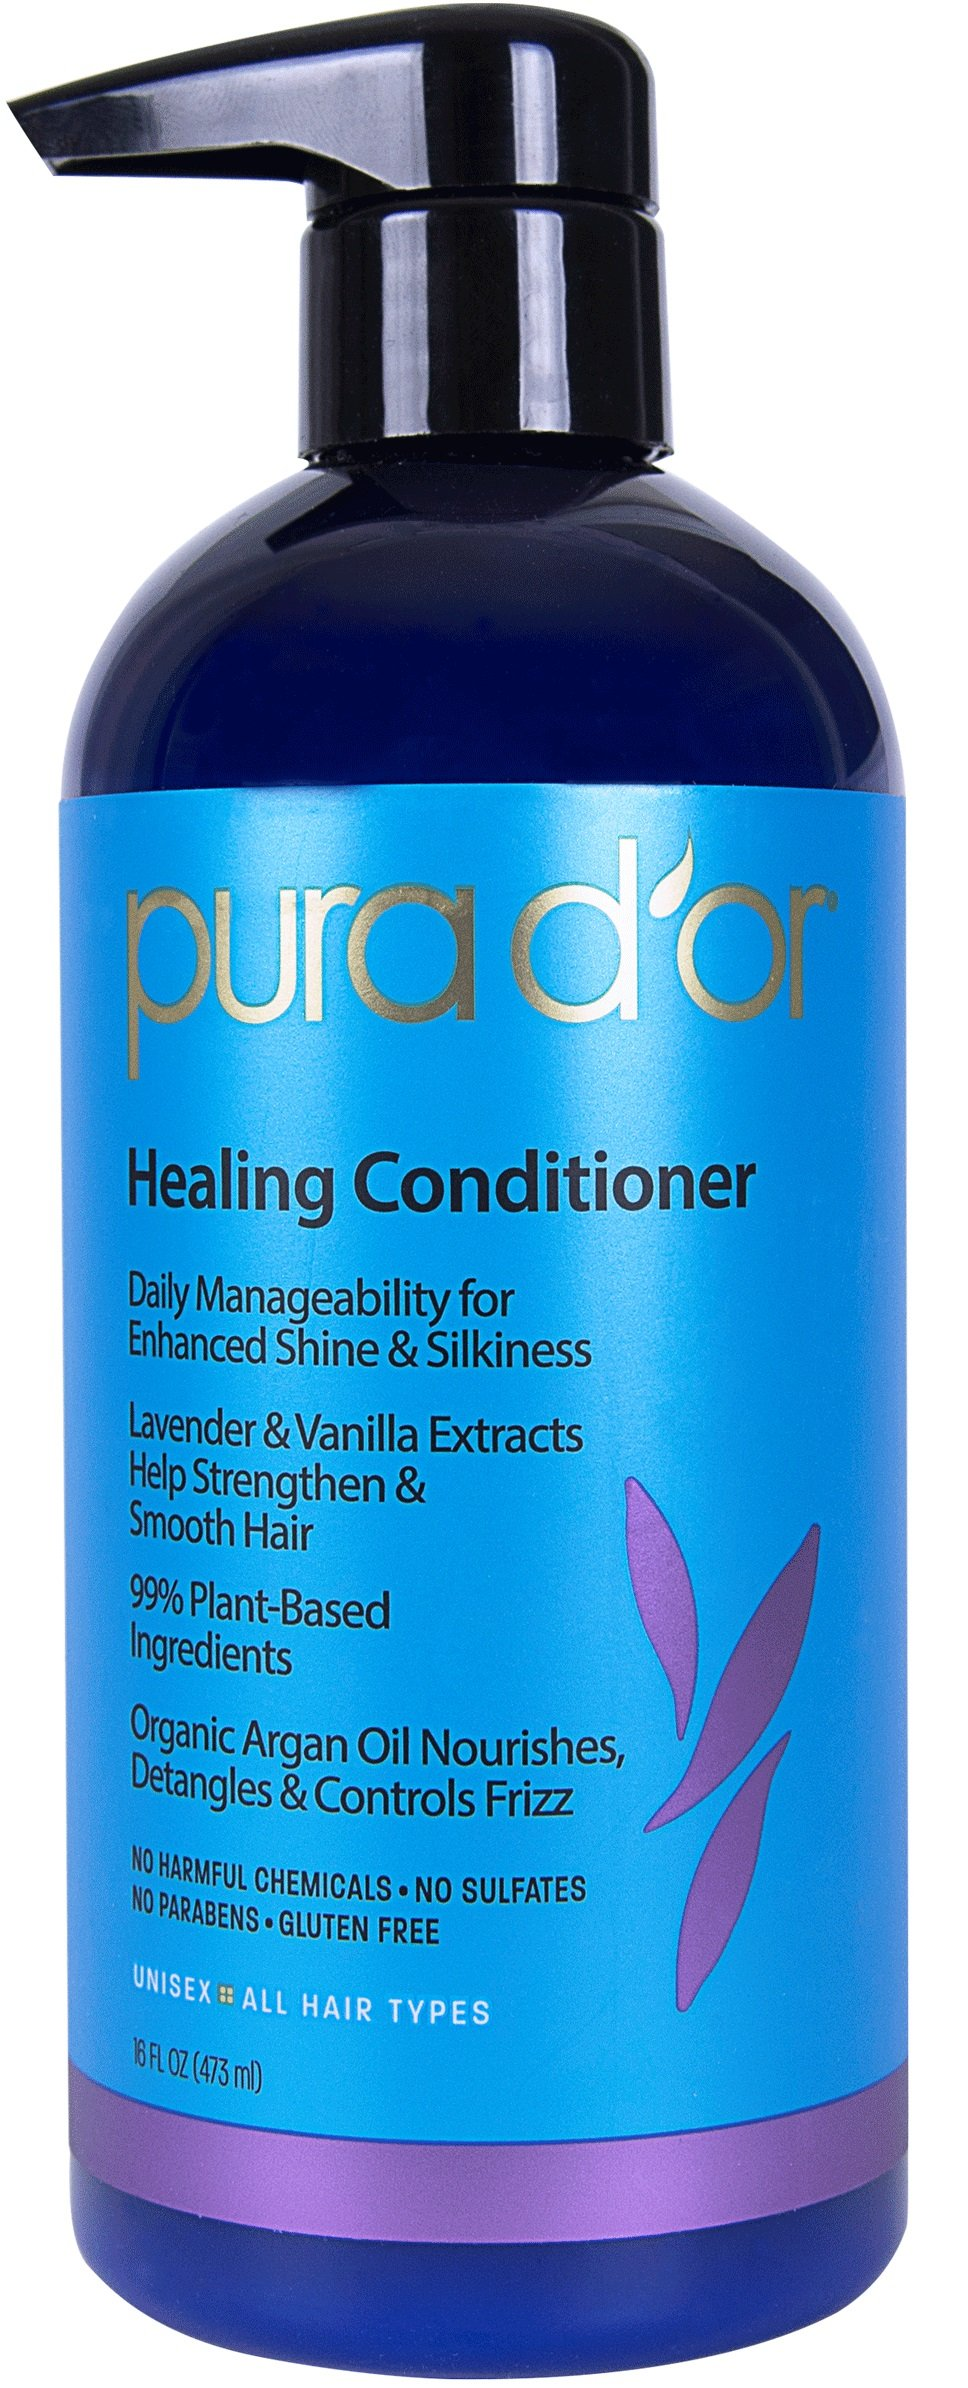 PURA D'OR Healing Conditioner Enhances Shine & Reduces Frizz, Sulfate Free Gentle Formula with Organic Argan Oil, Lavender and Vanilla, for All Hair Types, Men and Women, 16 Fl Oz (Packaging may vary) by PURA D'OR